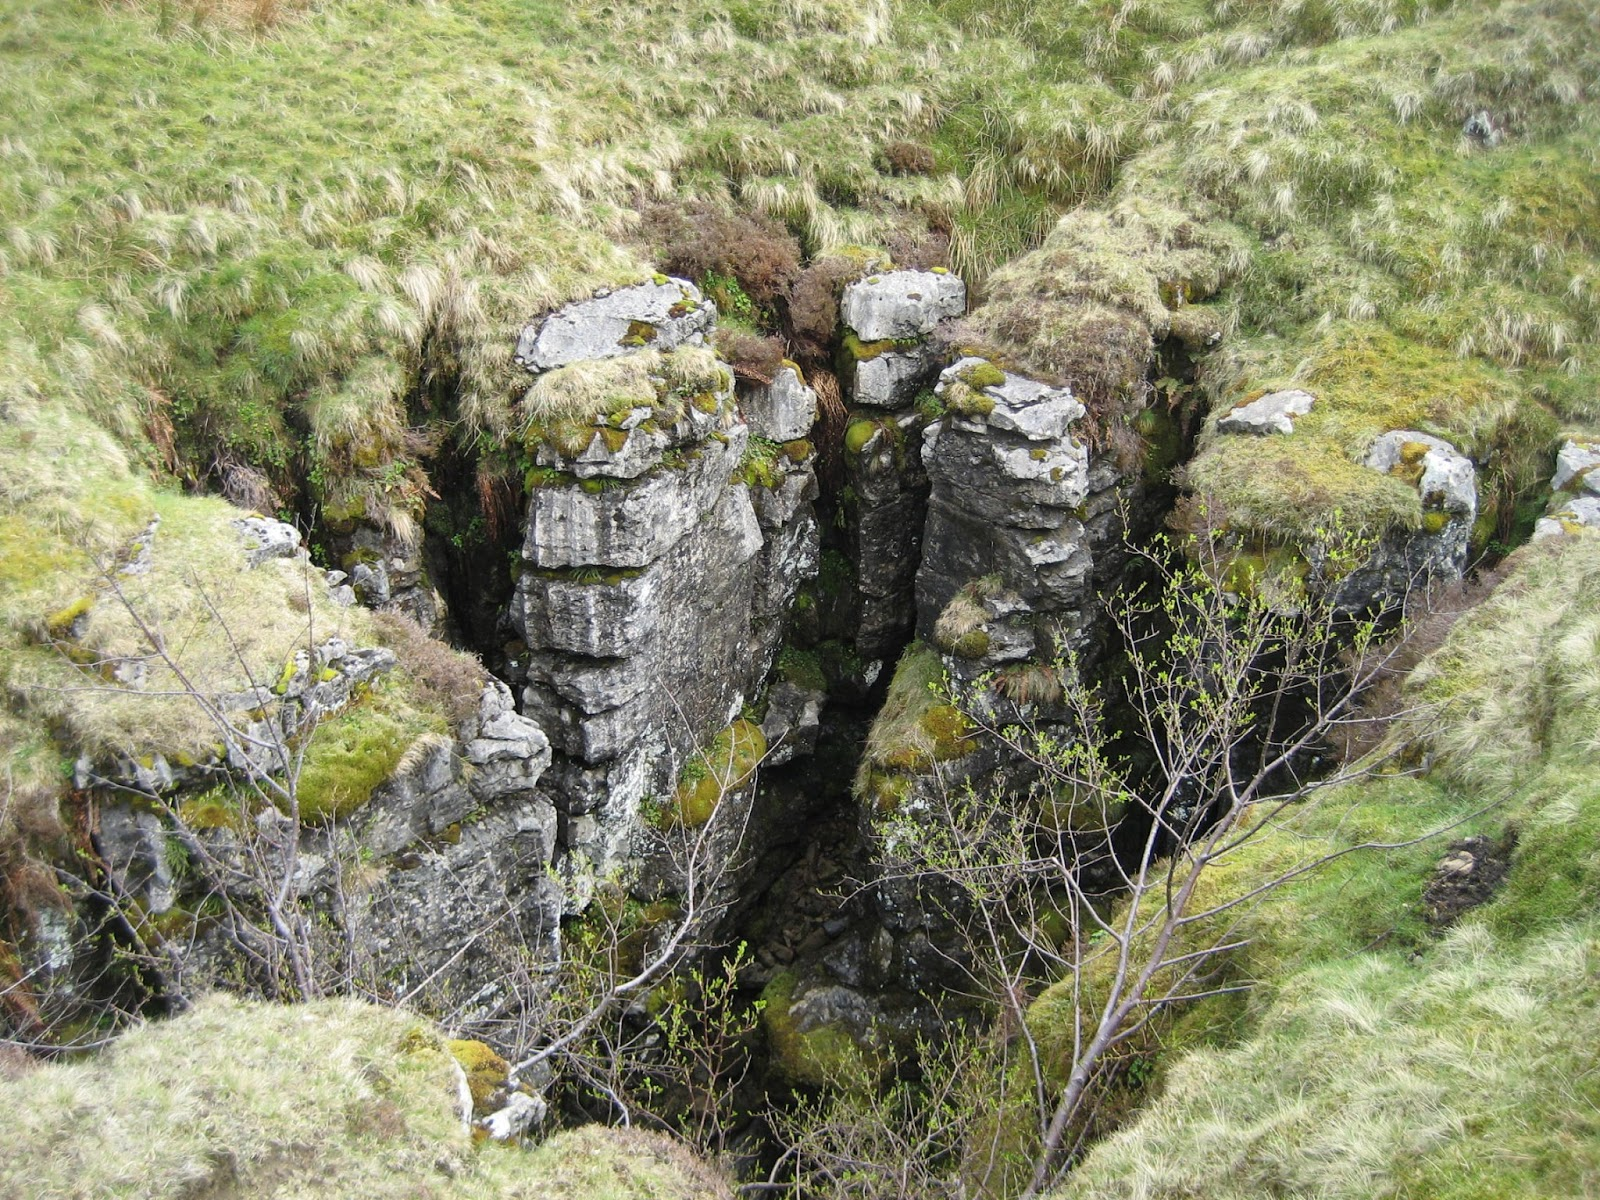 The beautiful shaft of the Fluted Hole – or the Fairy's Throne, which swallows a small stream on its way to Moses Well in Clapdale. Stephen Oldfield